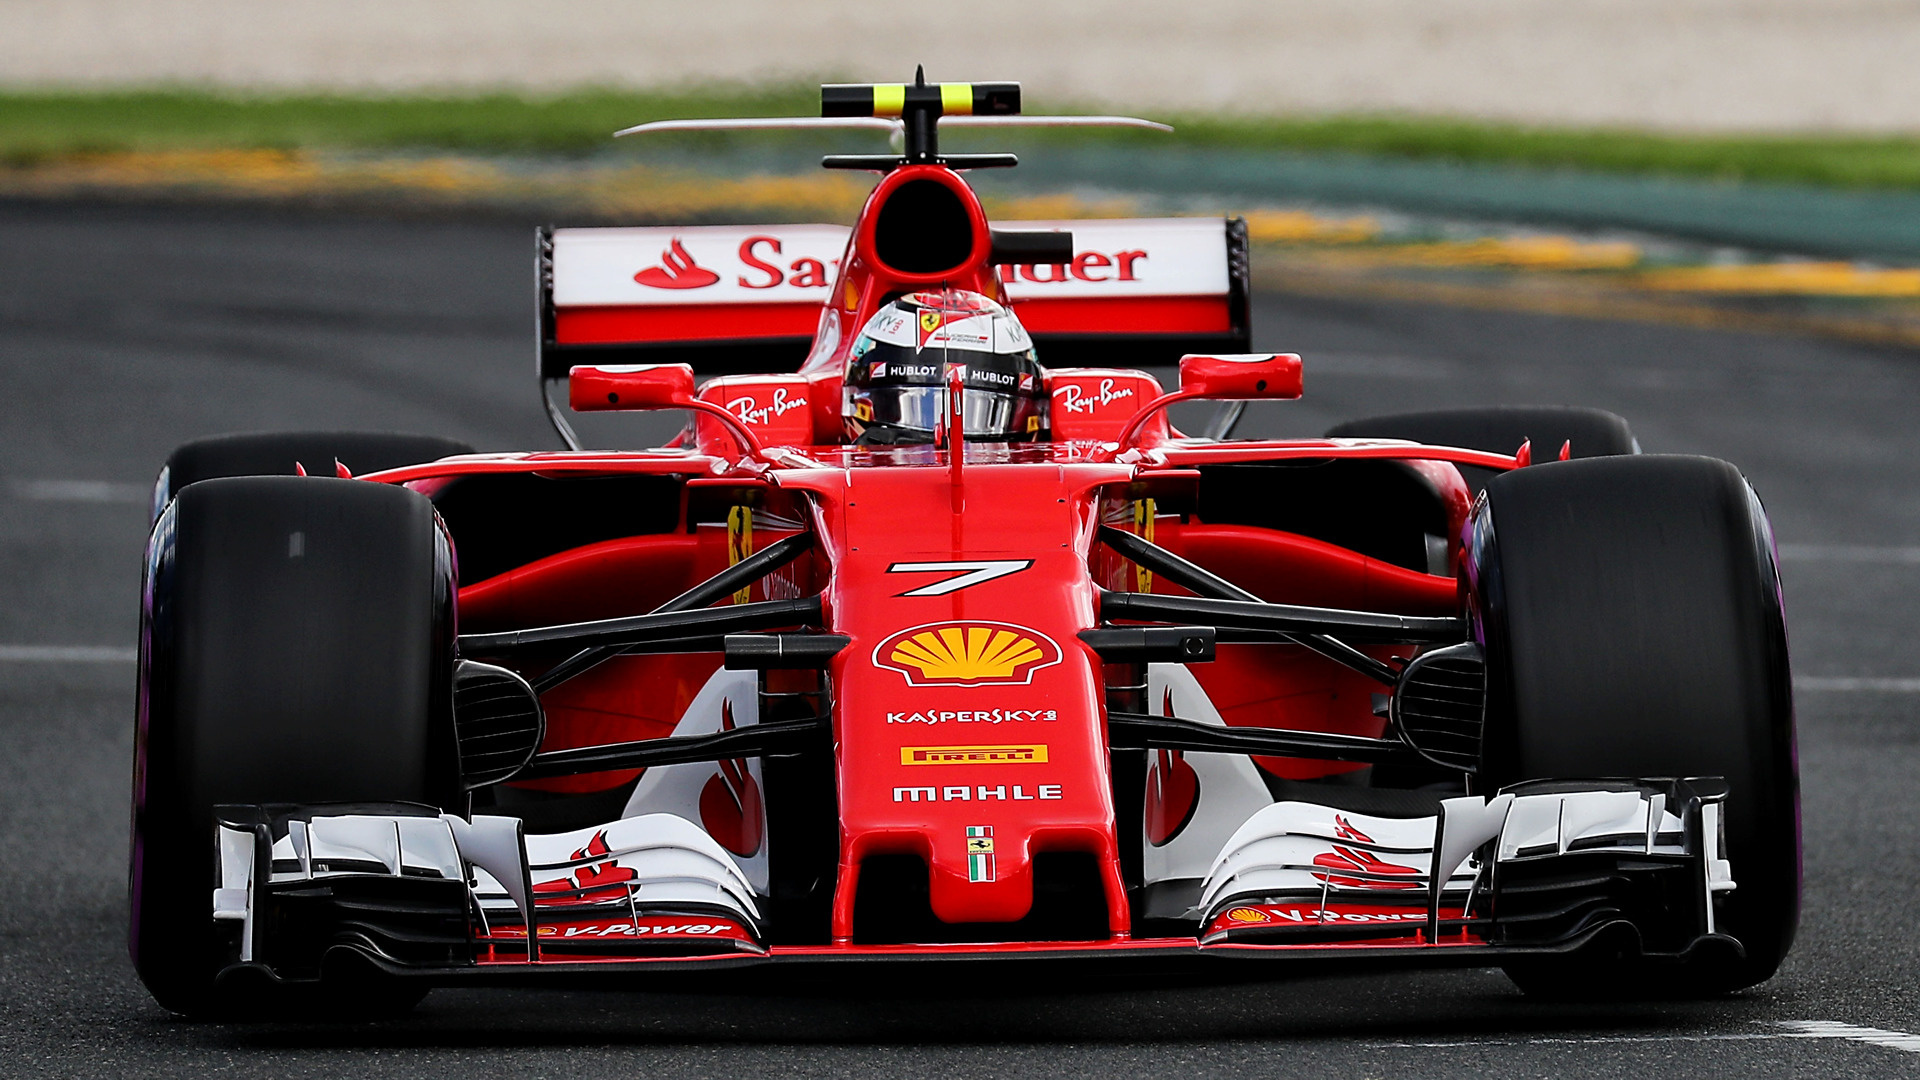 2017 Ferrari SF70H - Wallpapers and HD Images | Car Pixel